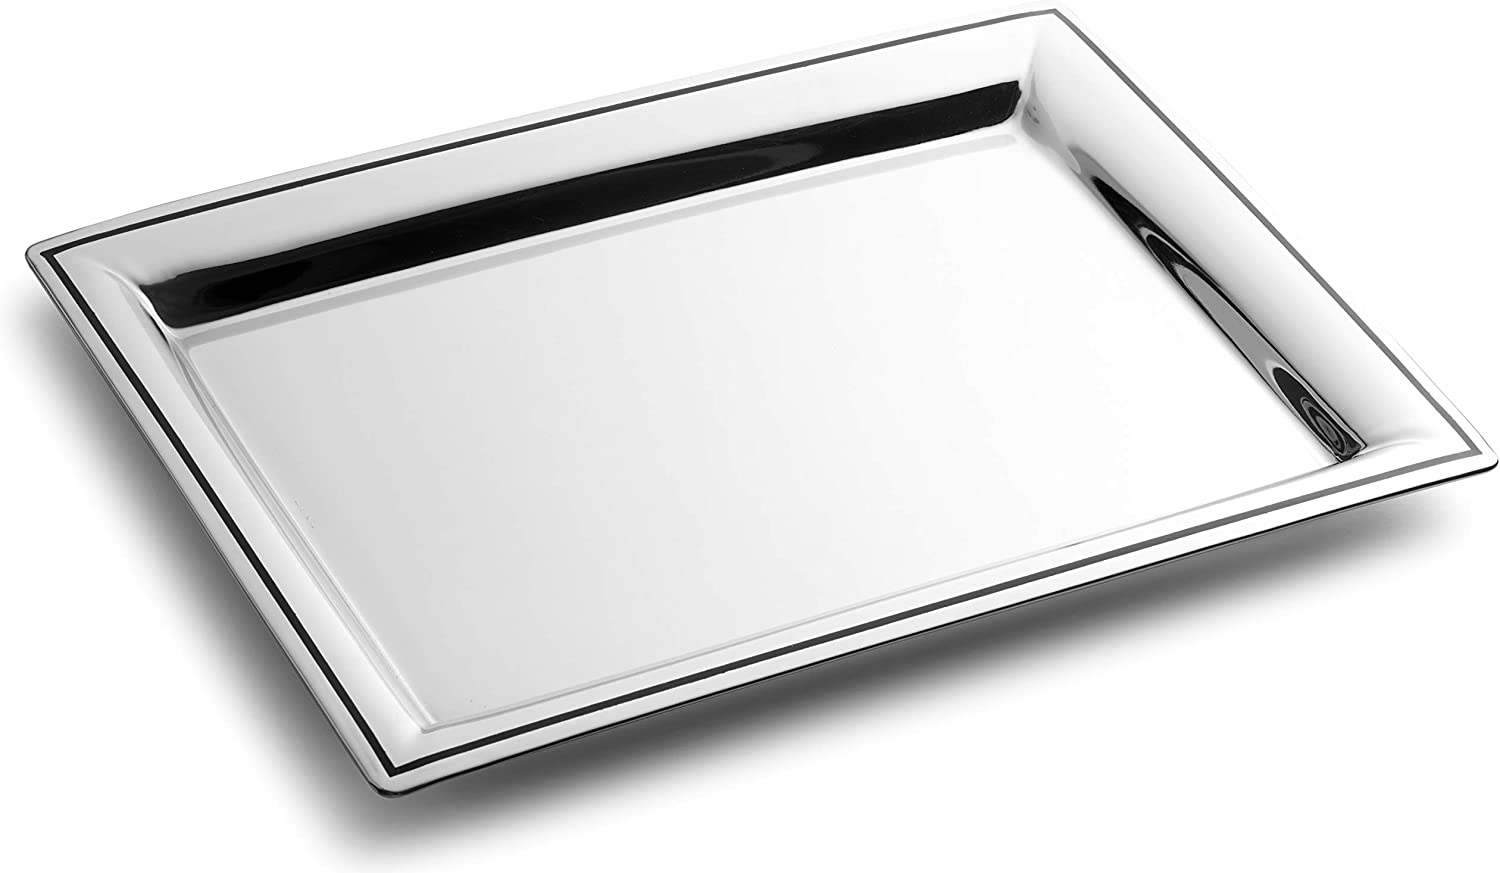 "Royalty Art Fancy Serving Tray, 16"" x 9.5"", Polished Silver Stainless Steel, Elegant Home Decor for Appetizers, Hor Dourves, Wine, and Event Hosting, Engraved Black Line"